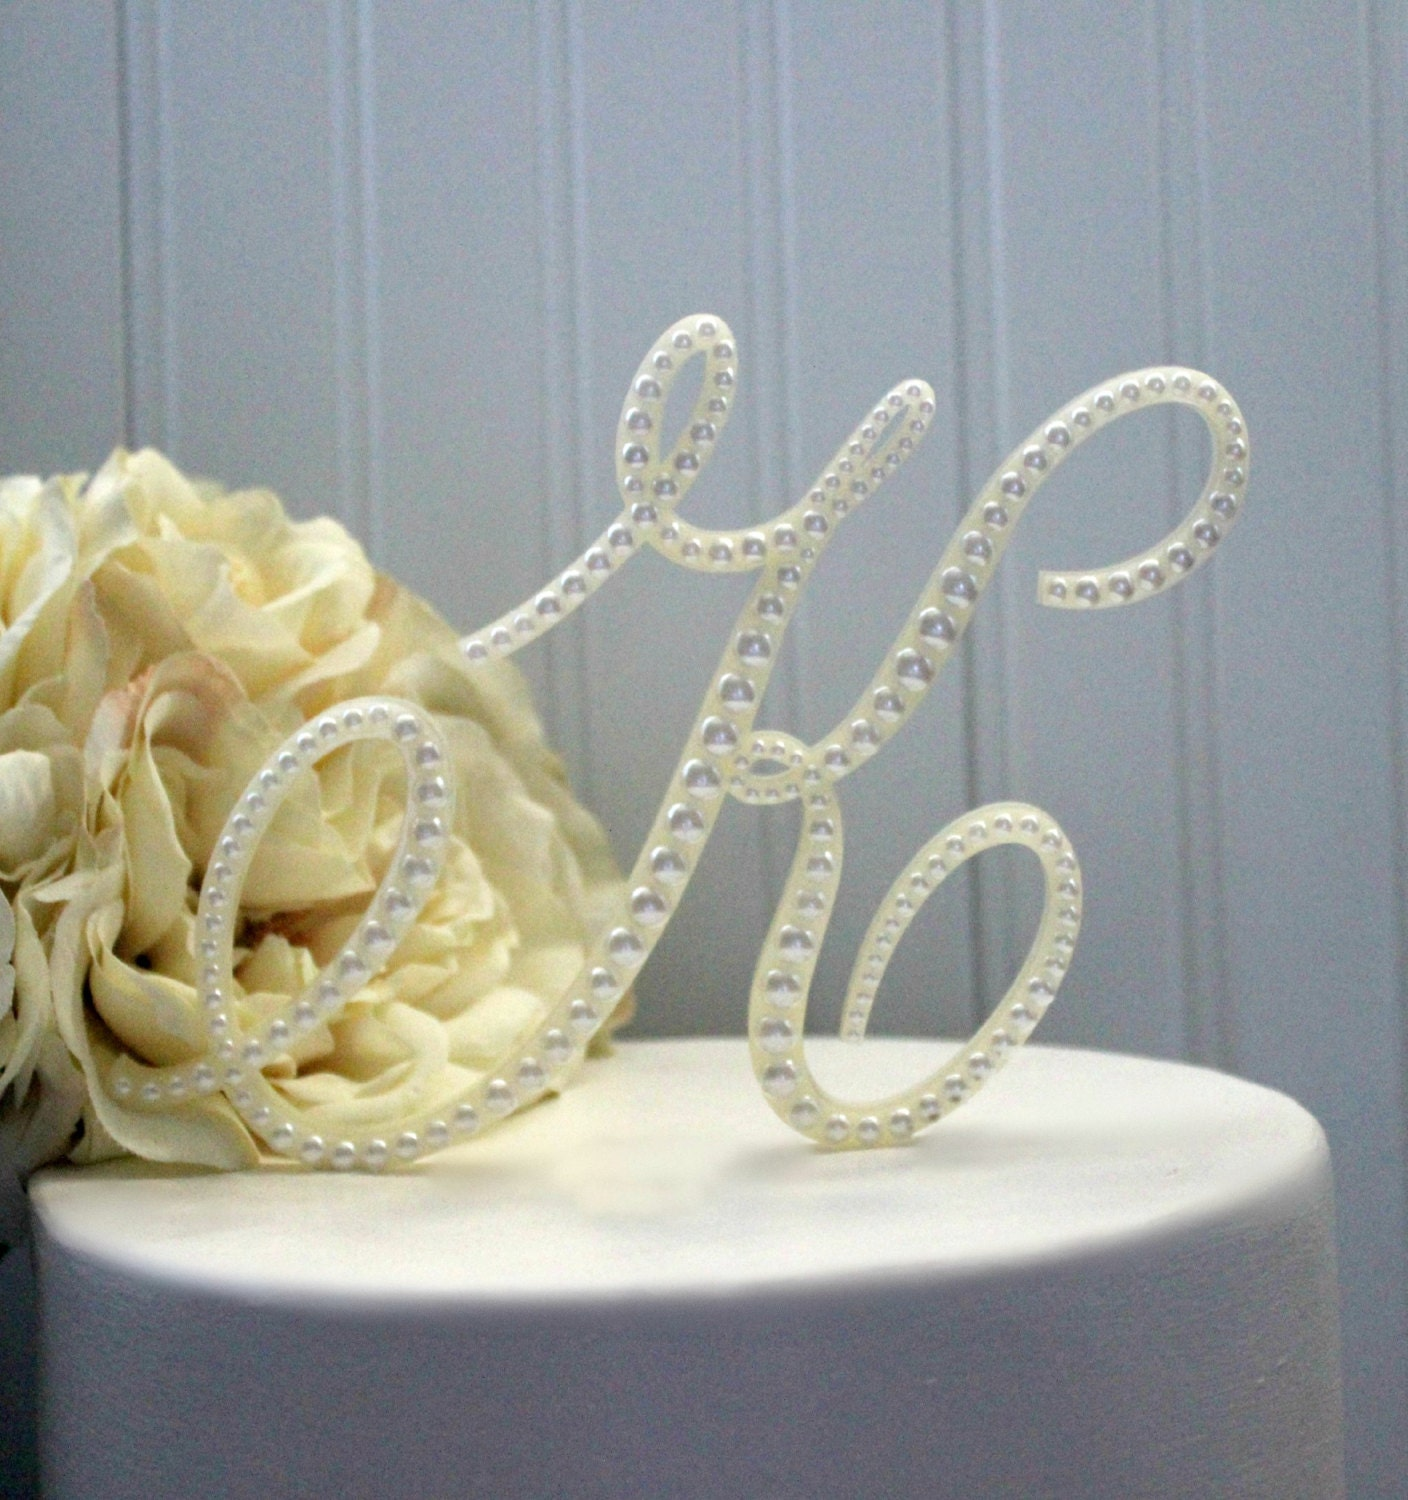 Cake Decor Pearls : Pearl Wedding Cake Topper Pearl Initial cake toppers Vintage